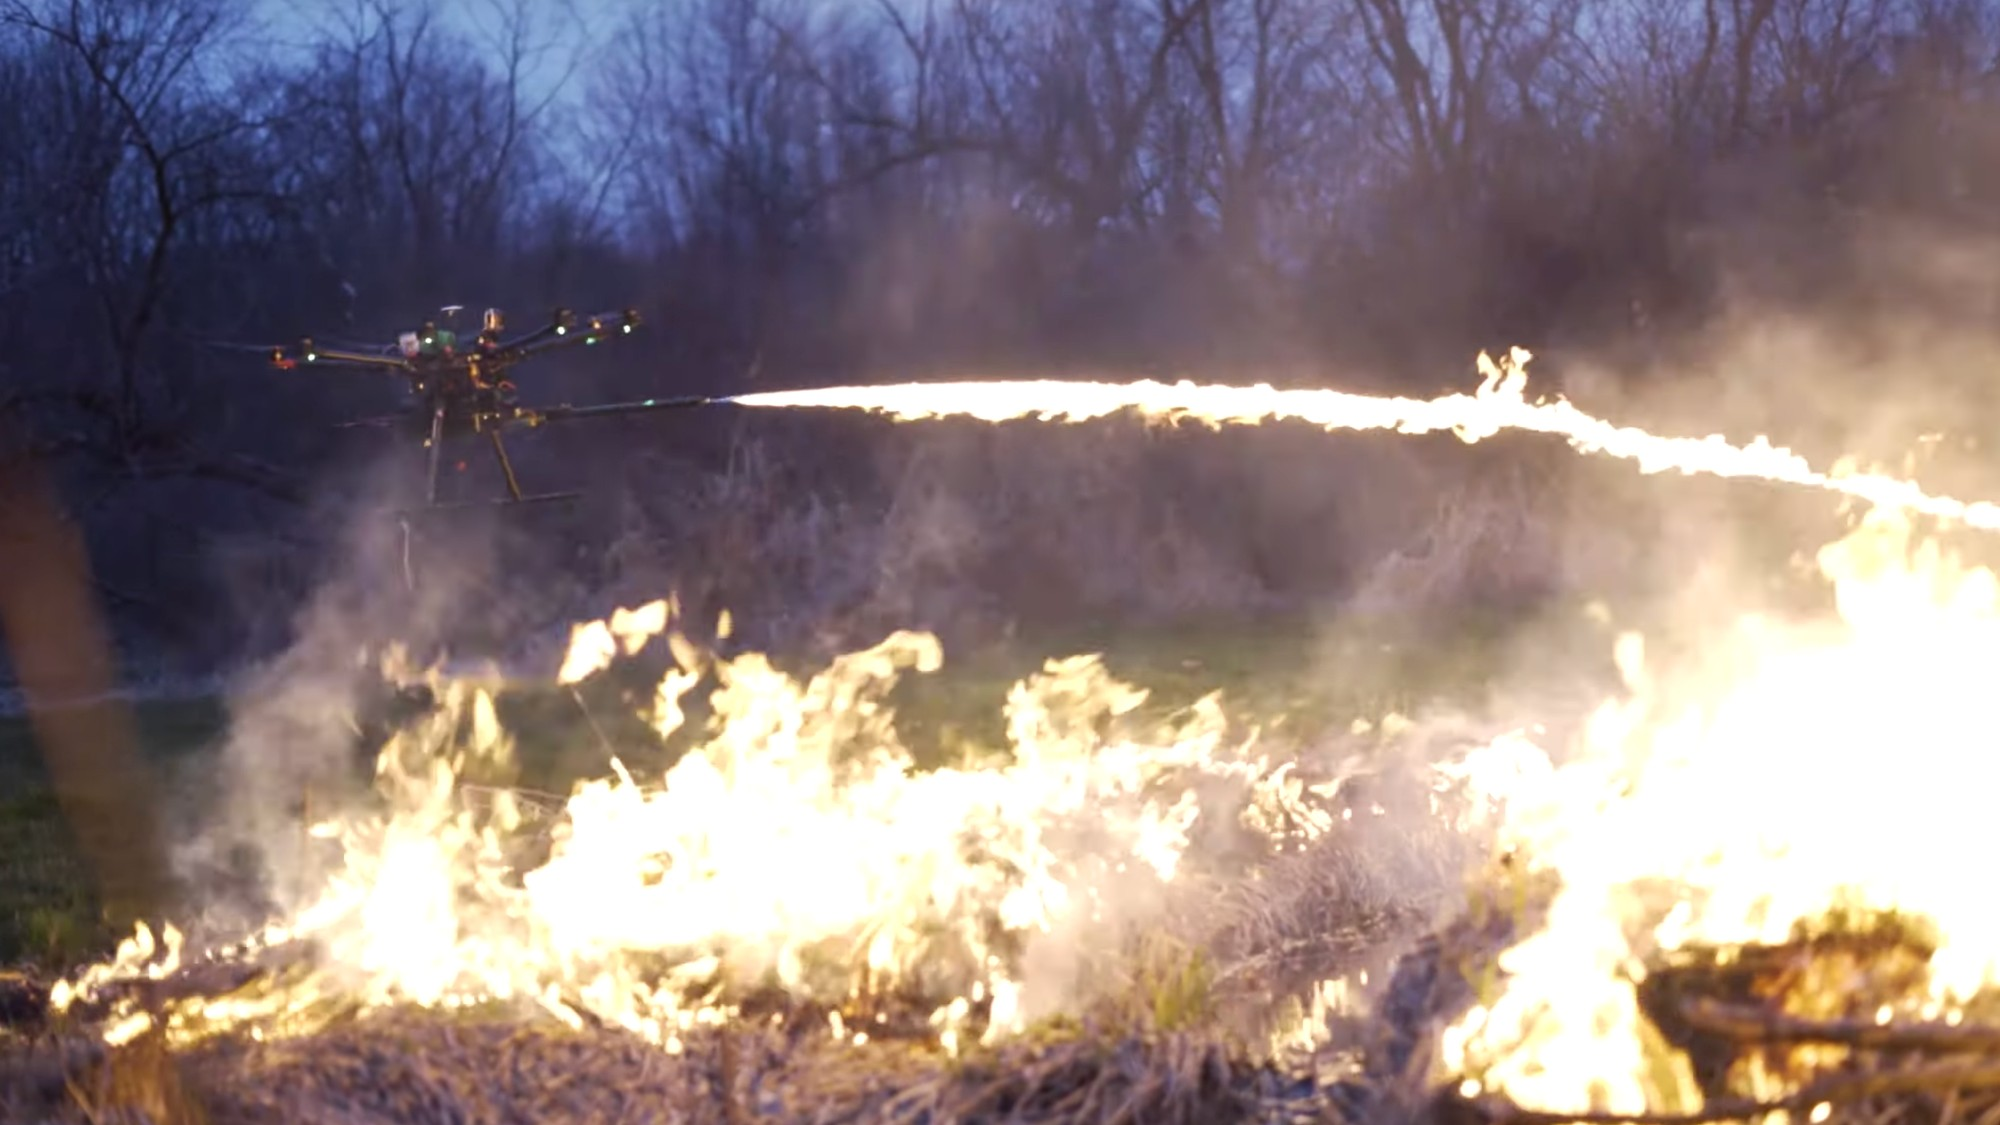 This Company Is Selling Drone-Mounted Flamethrowers to the